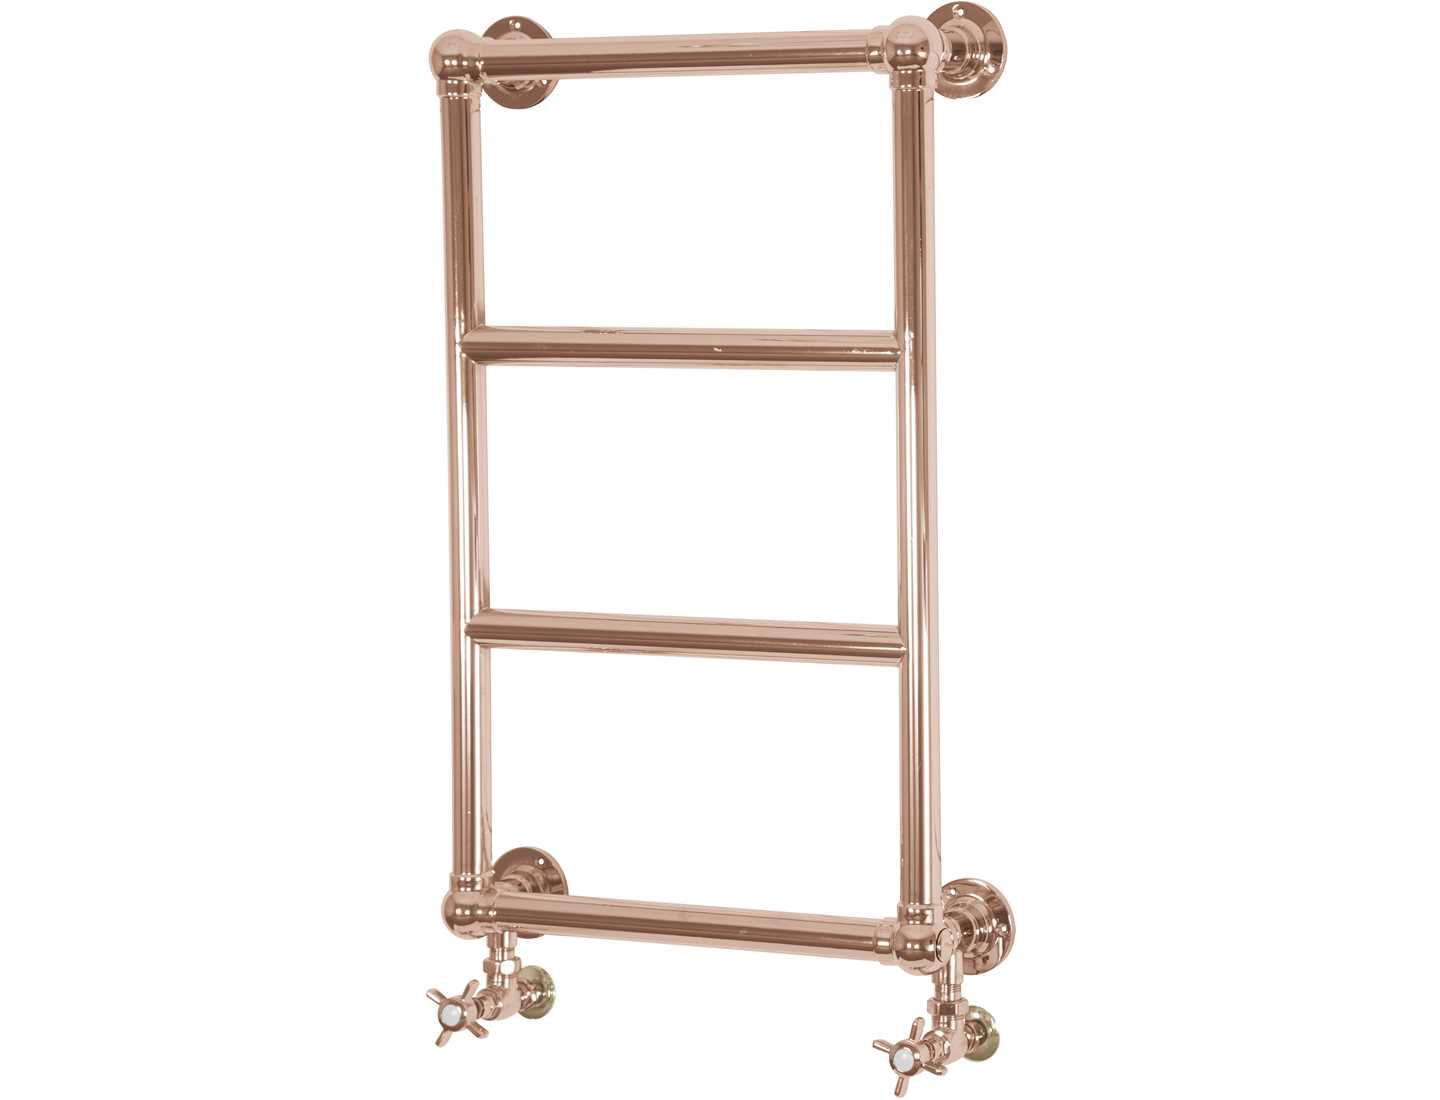 Winster wall mounted towel rail - copper